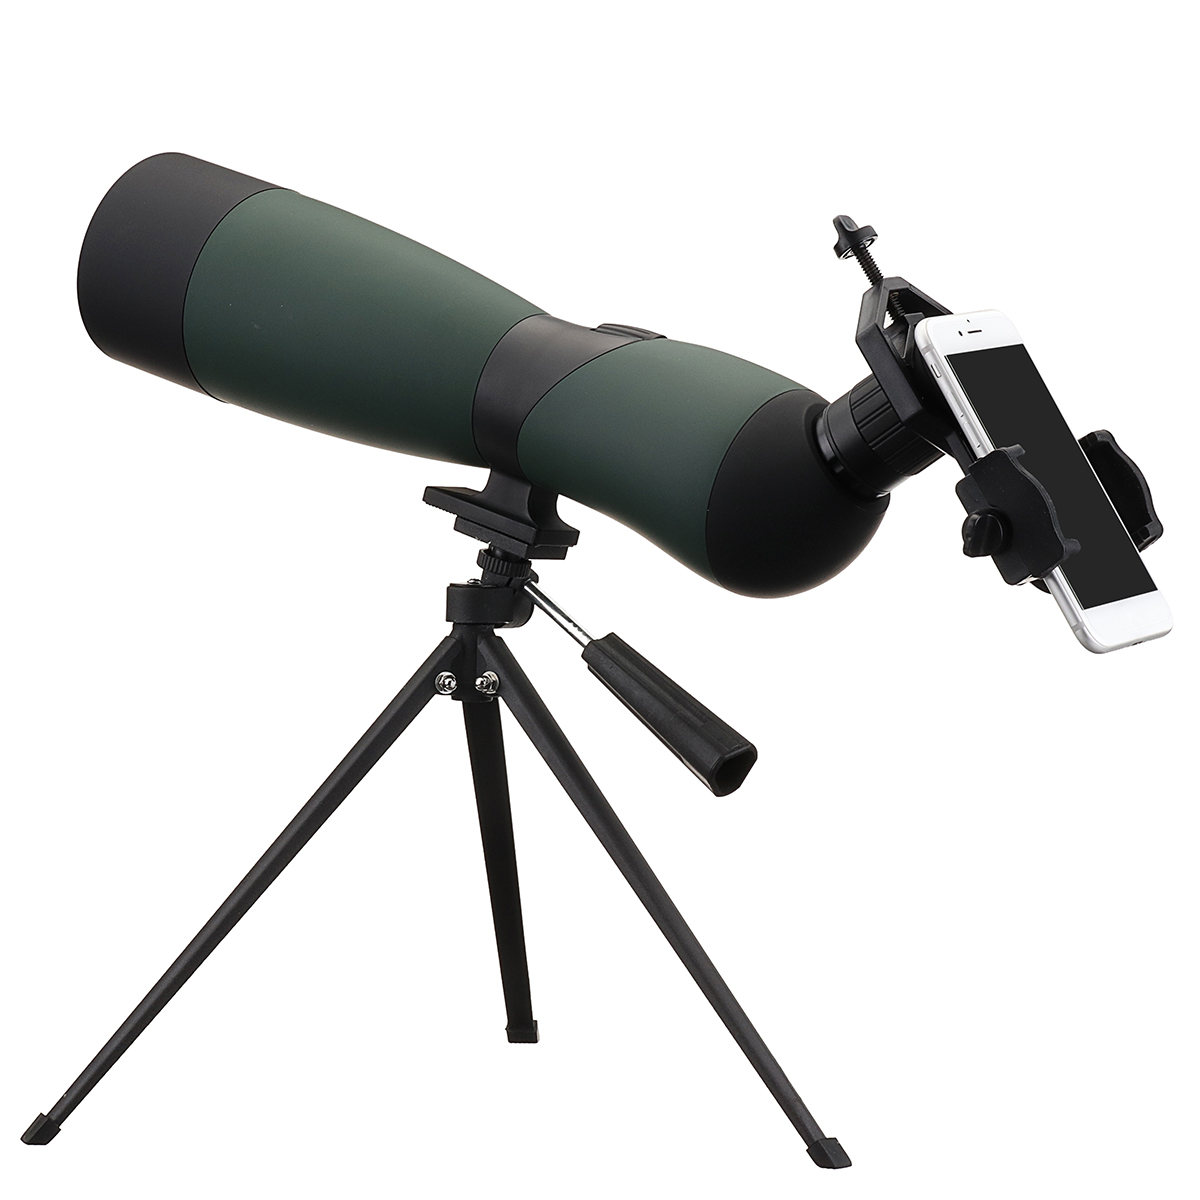 25-75x70 HD Lens Monocular Telescope Tripod CellPhone Clip Night Vision Outdoor Waterproof Telescopes